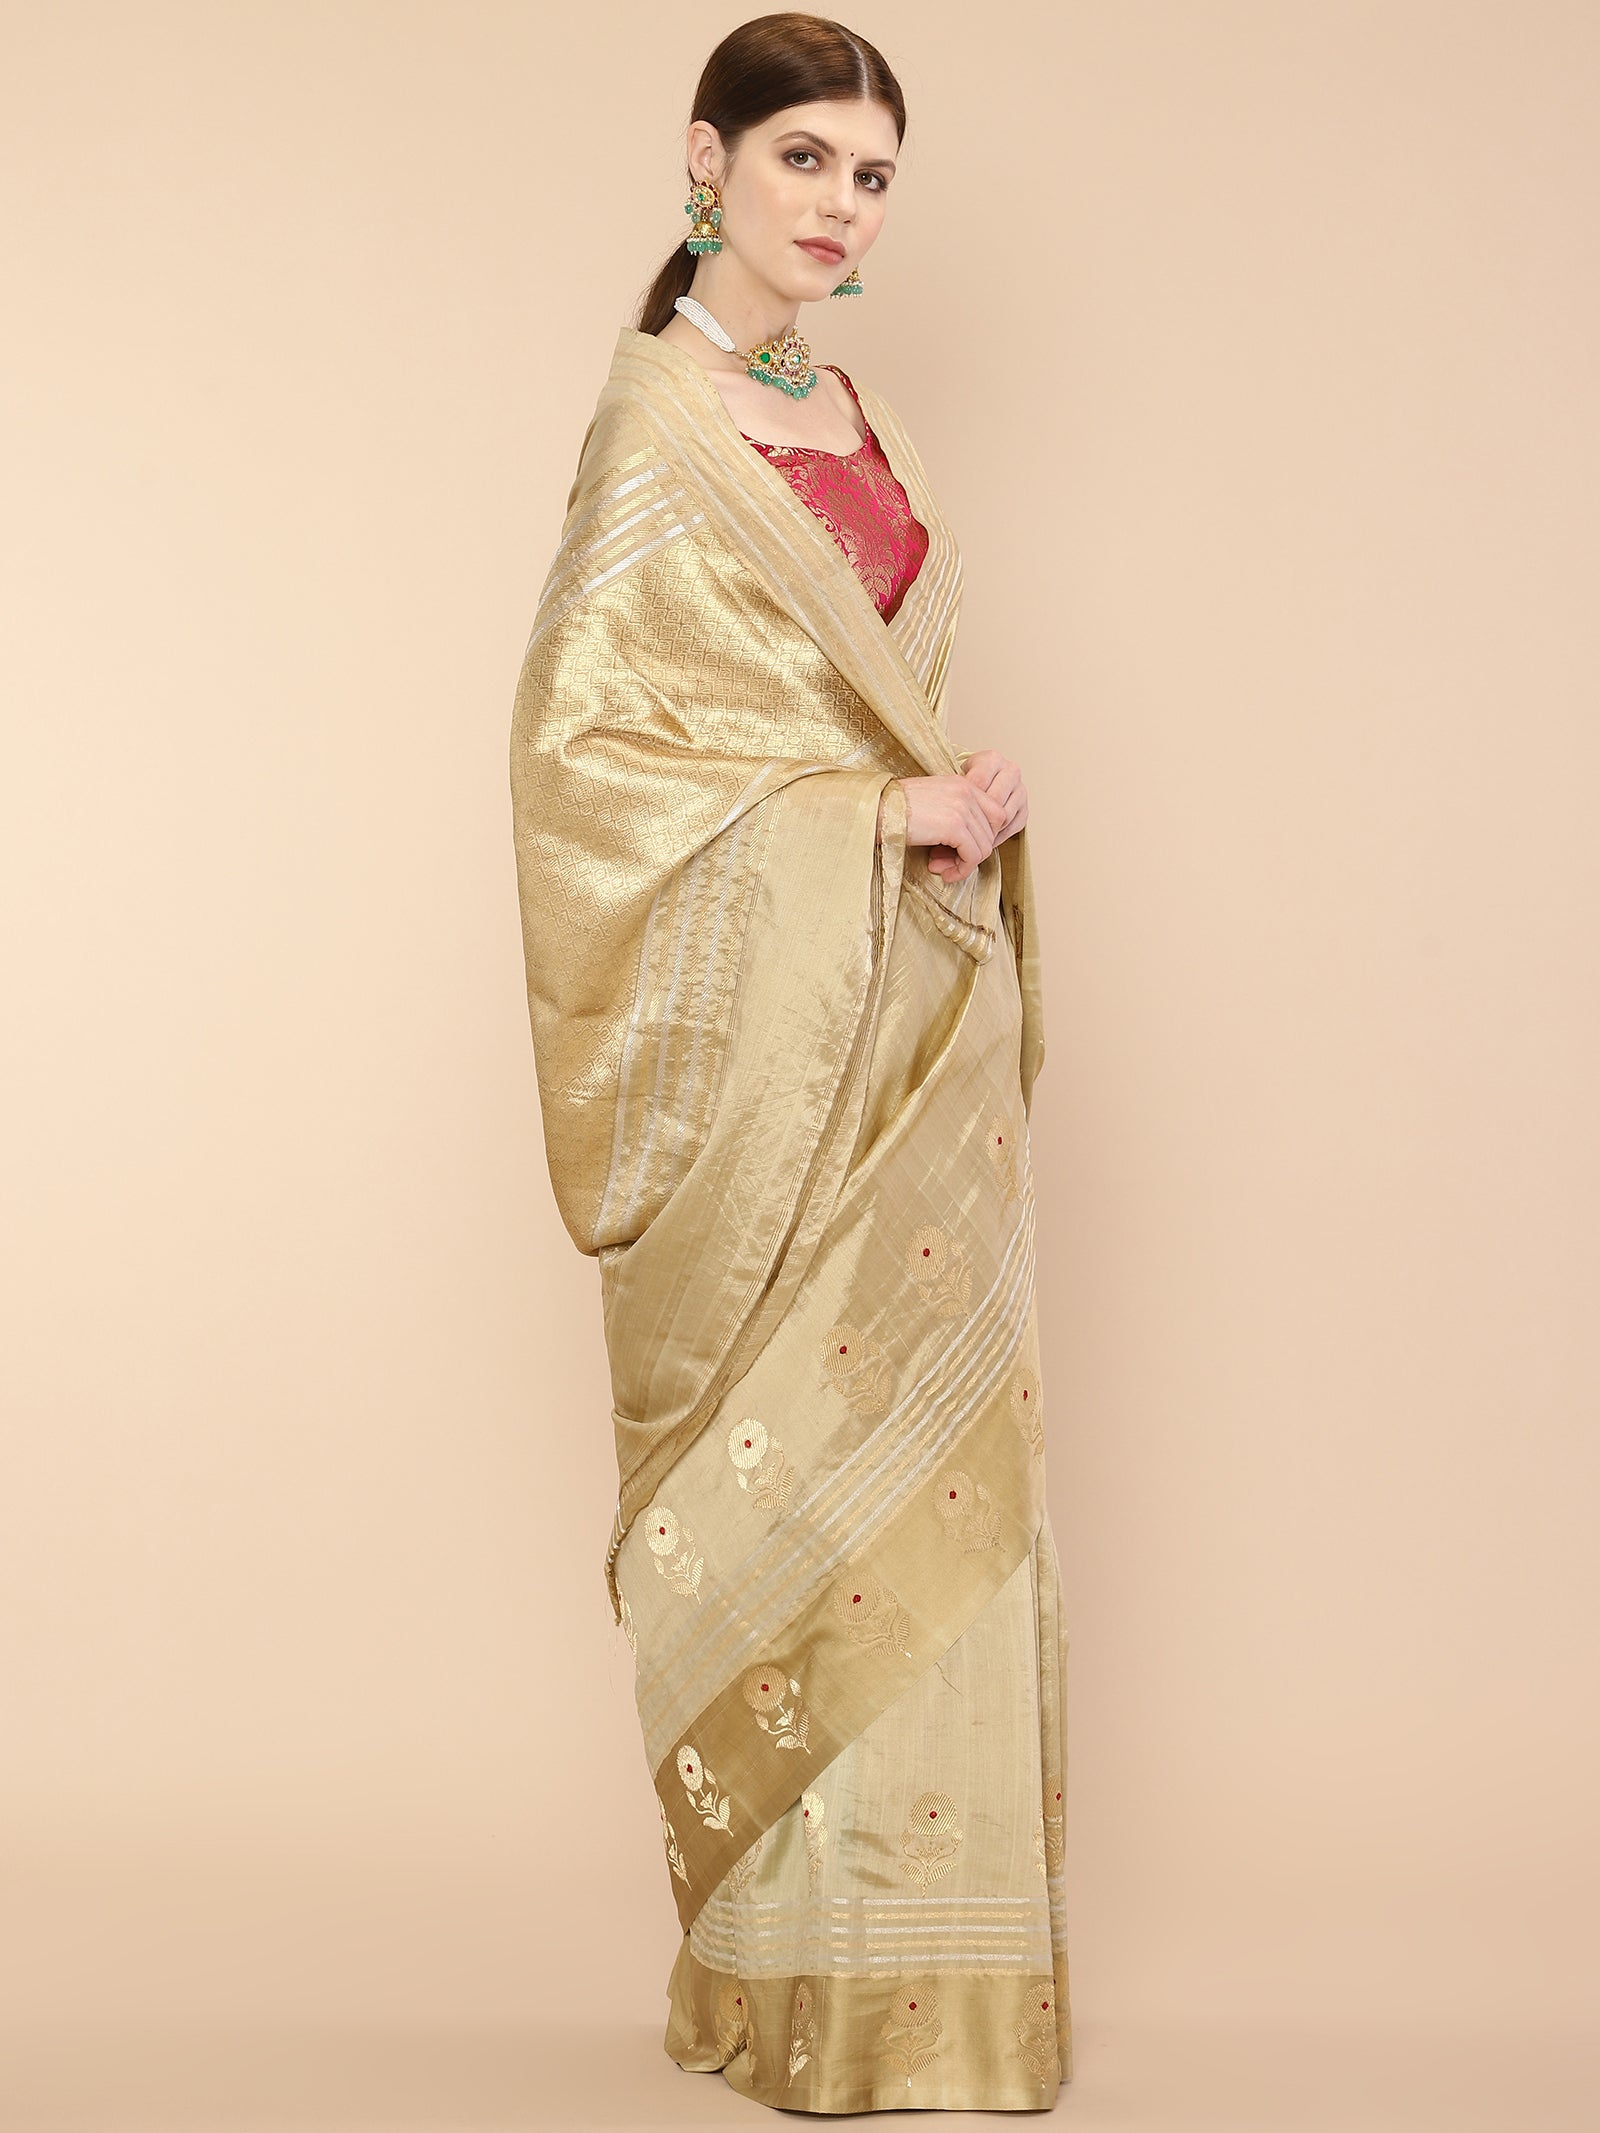 Handwoven Golden Beige Banarasi Saree